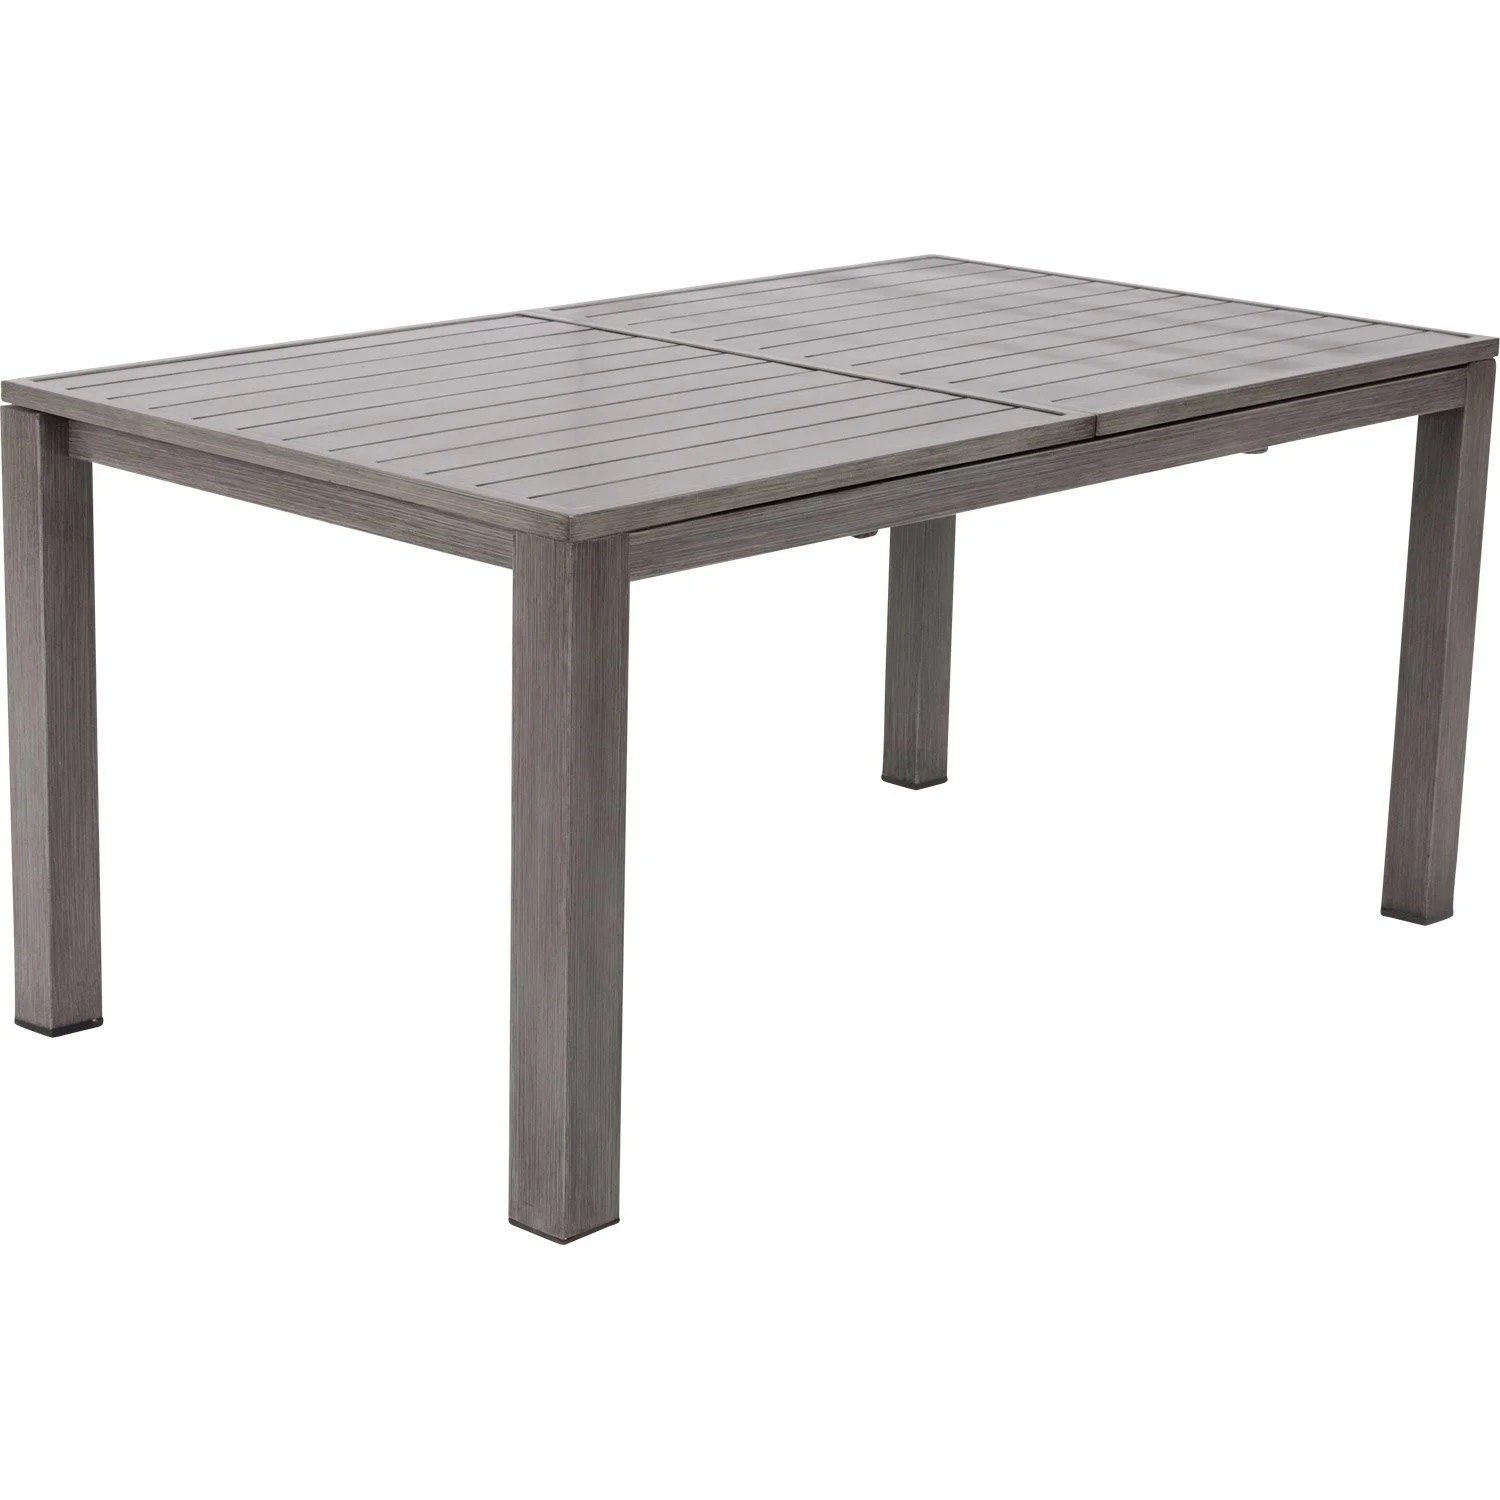 Table De Jardin En Bois Carré Table De Jardin Naterial Antibes 220 Rectangulaire Gris